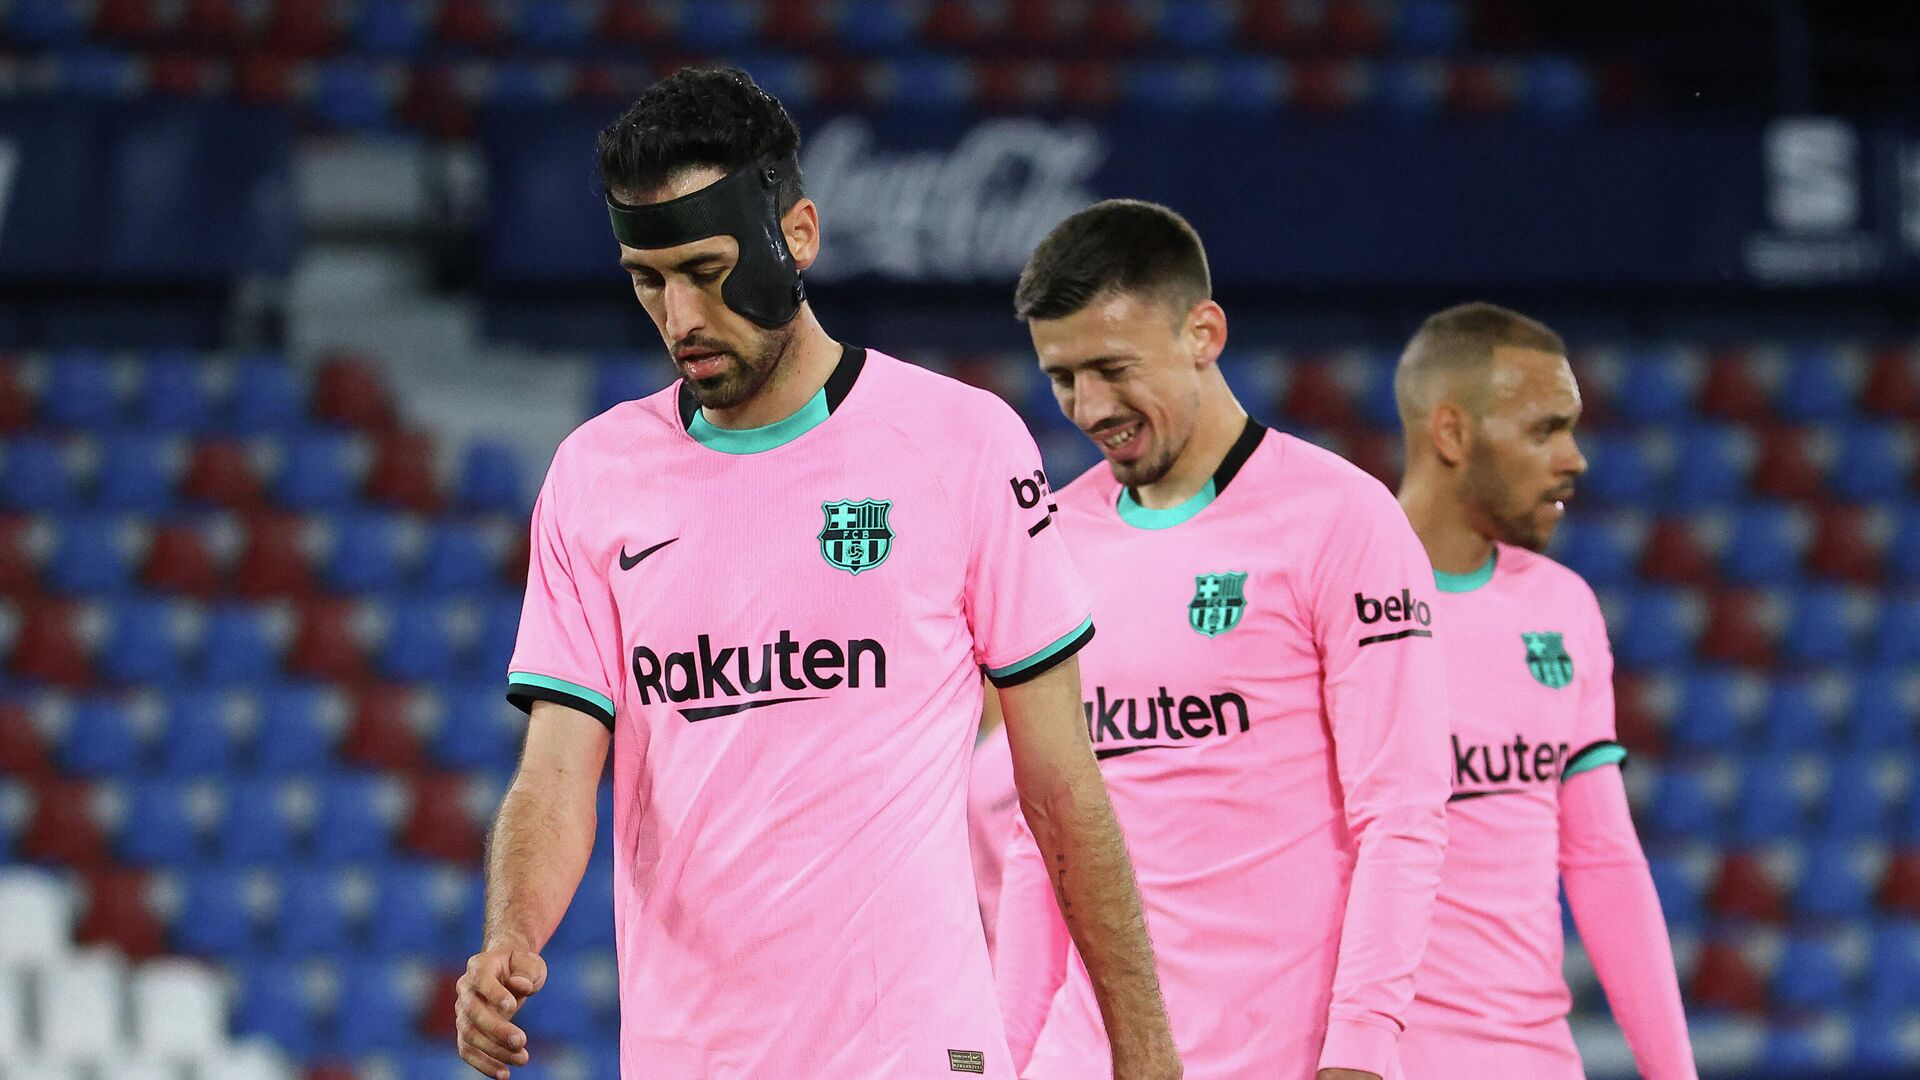 Barcelona's Spanish midfielder Sergio Busquets, Barcelona's French defender Clement Lenglet and Barcelona's Danish forward Martin Braithwaite react at the end of the Spanish league football match Levante UD against FC Barcelona at the Ciutat de Valencia stadium in Valencia on May 11, 2021. (Photo by JOSE JORDAN / AFP) - РИА Новости, 1920, 12.05.2021